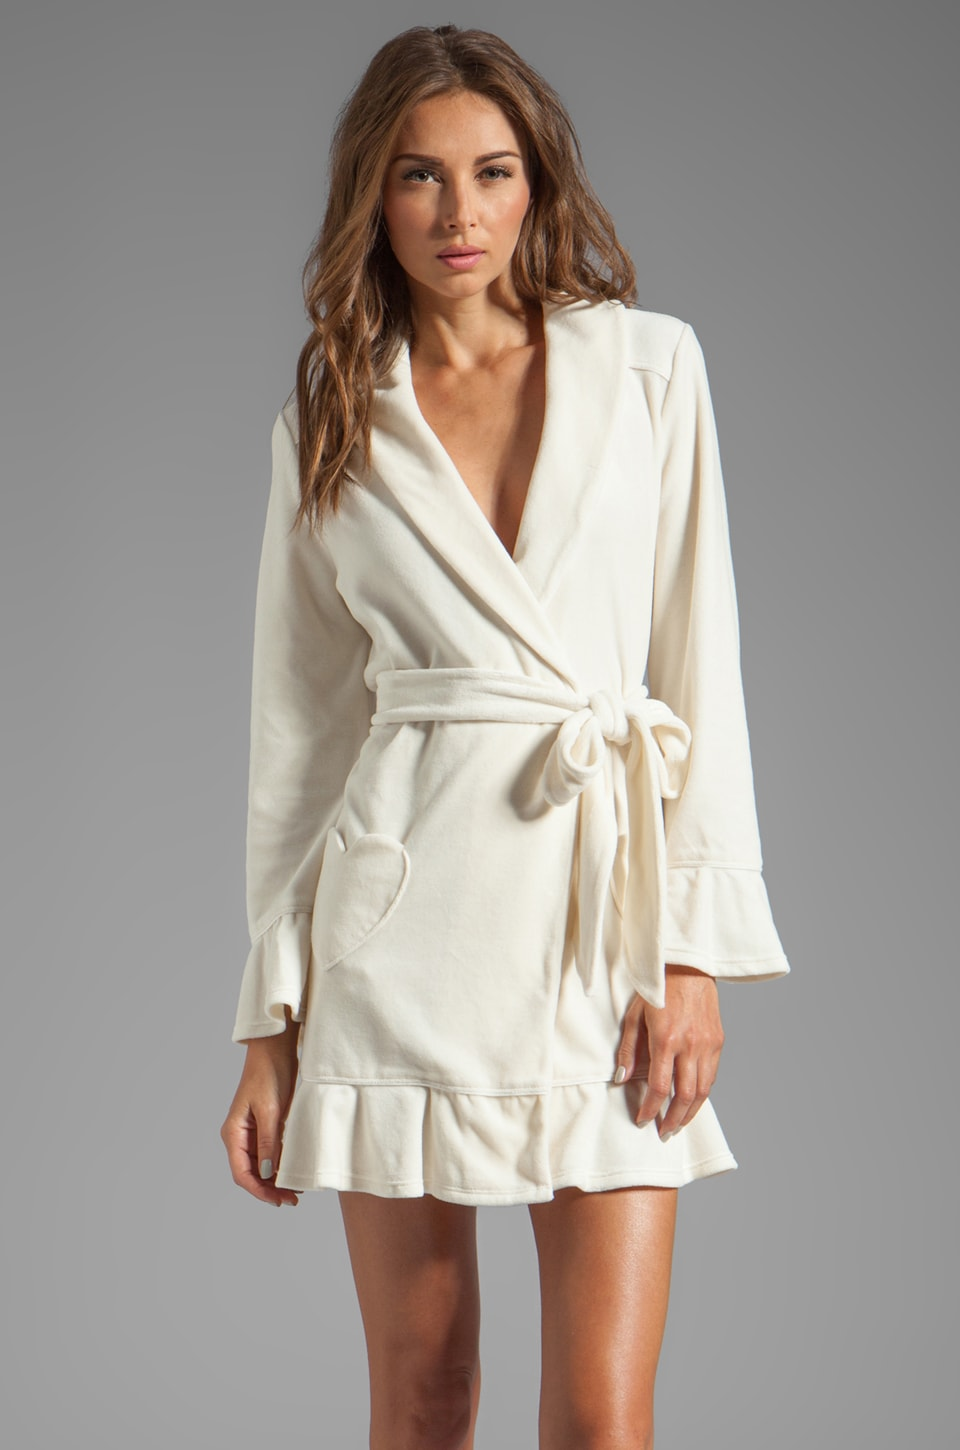 Juicy Couture Velour Robe in Angel